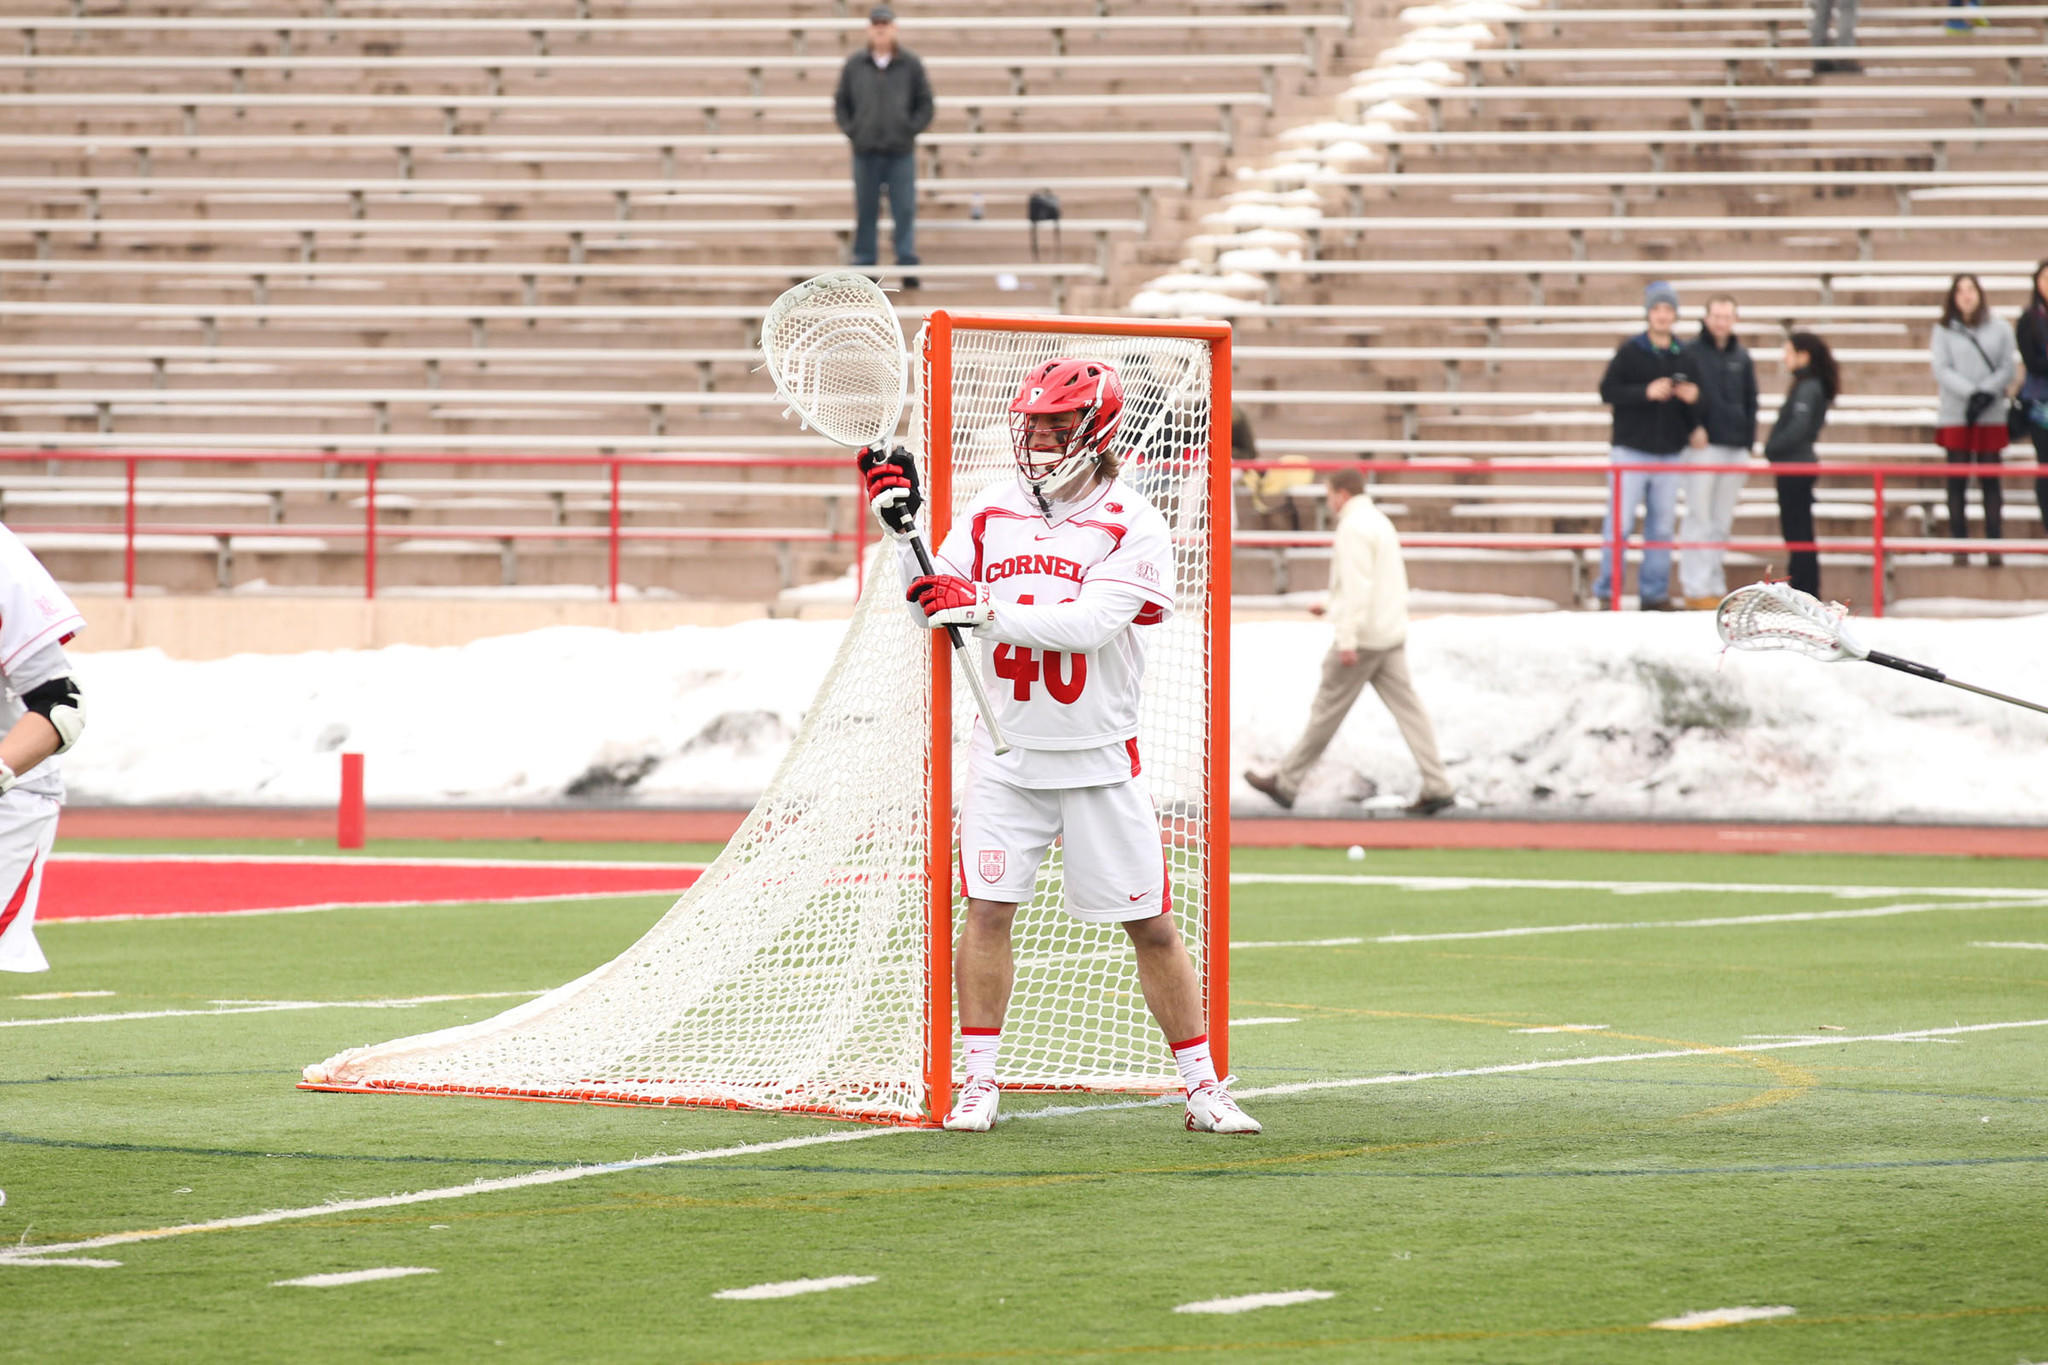 Cornell goalie Christian Knight, a Boys' Latin graduate, has won back-to-back Ivy League Rookie of the Week honors.